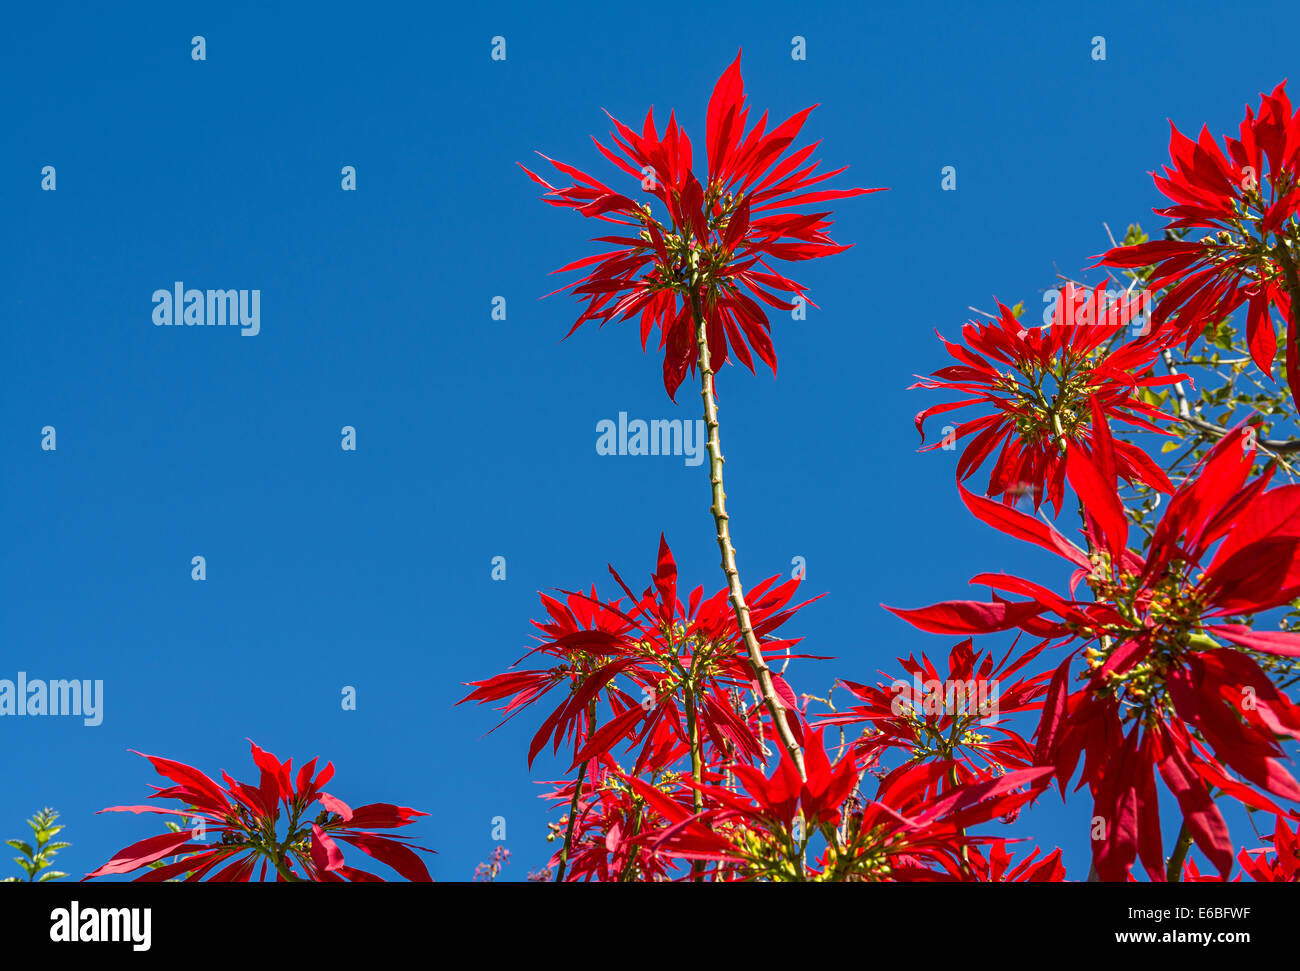 Vibrant and colorful Euphorbia pulcherrima plant. - Stock Image